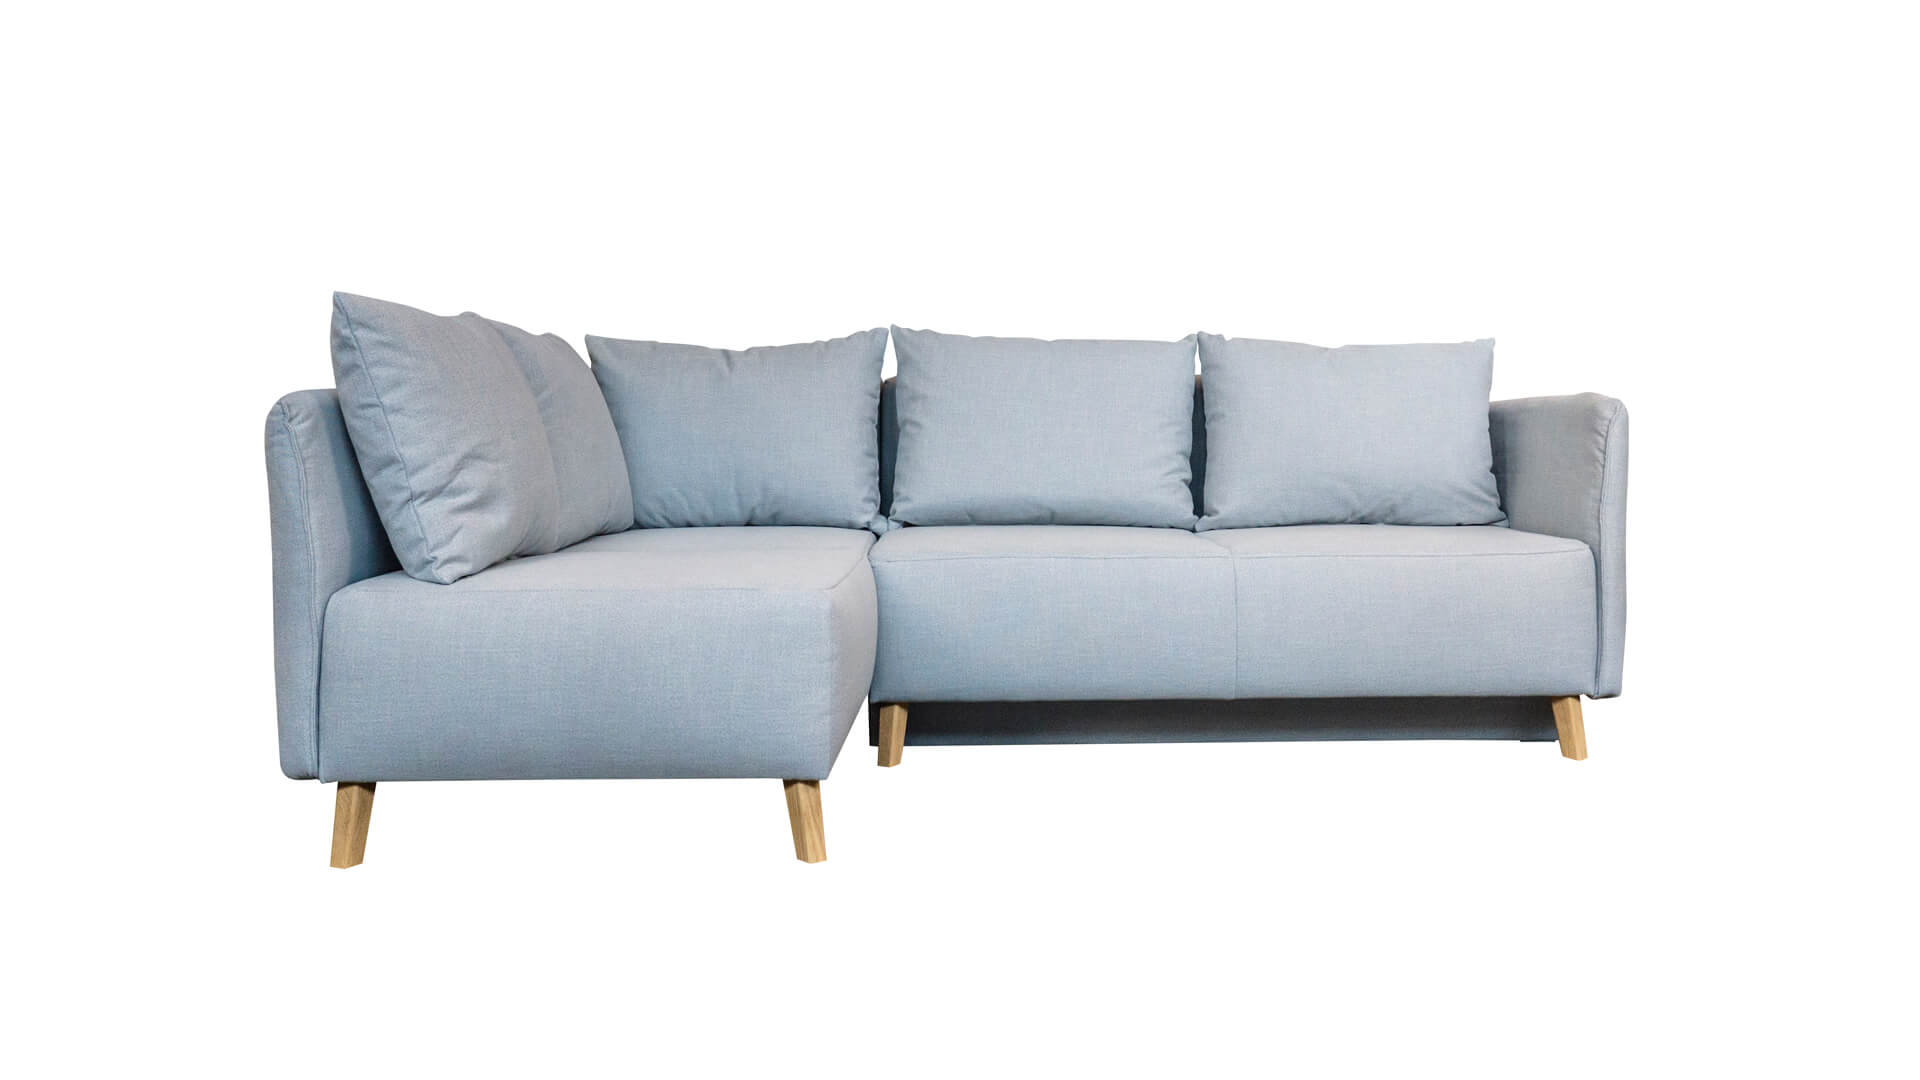 Beautiful sofa skandinavischer stil ideas for Sofa nordischer stil